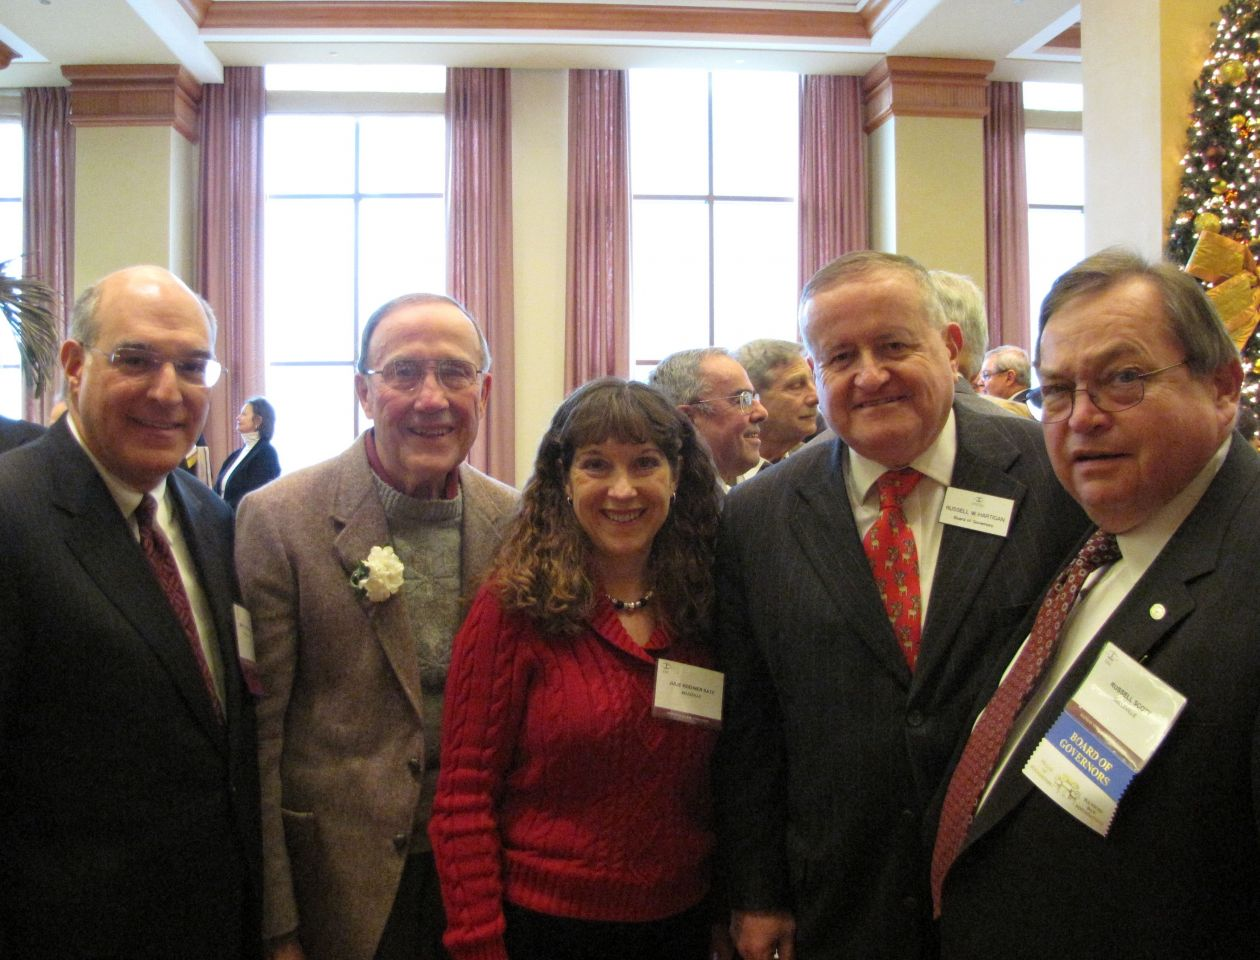 (Click to enlarge) ISBA President-Elect Mark Hassakis, Class of 1959 honoree Jim Keehner, his daughter, Julie Keehner Katz and ISBA Board of Governors members Russell Hartigan and Russell Scott